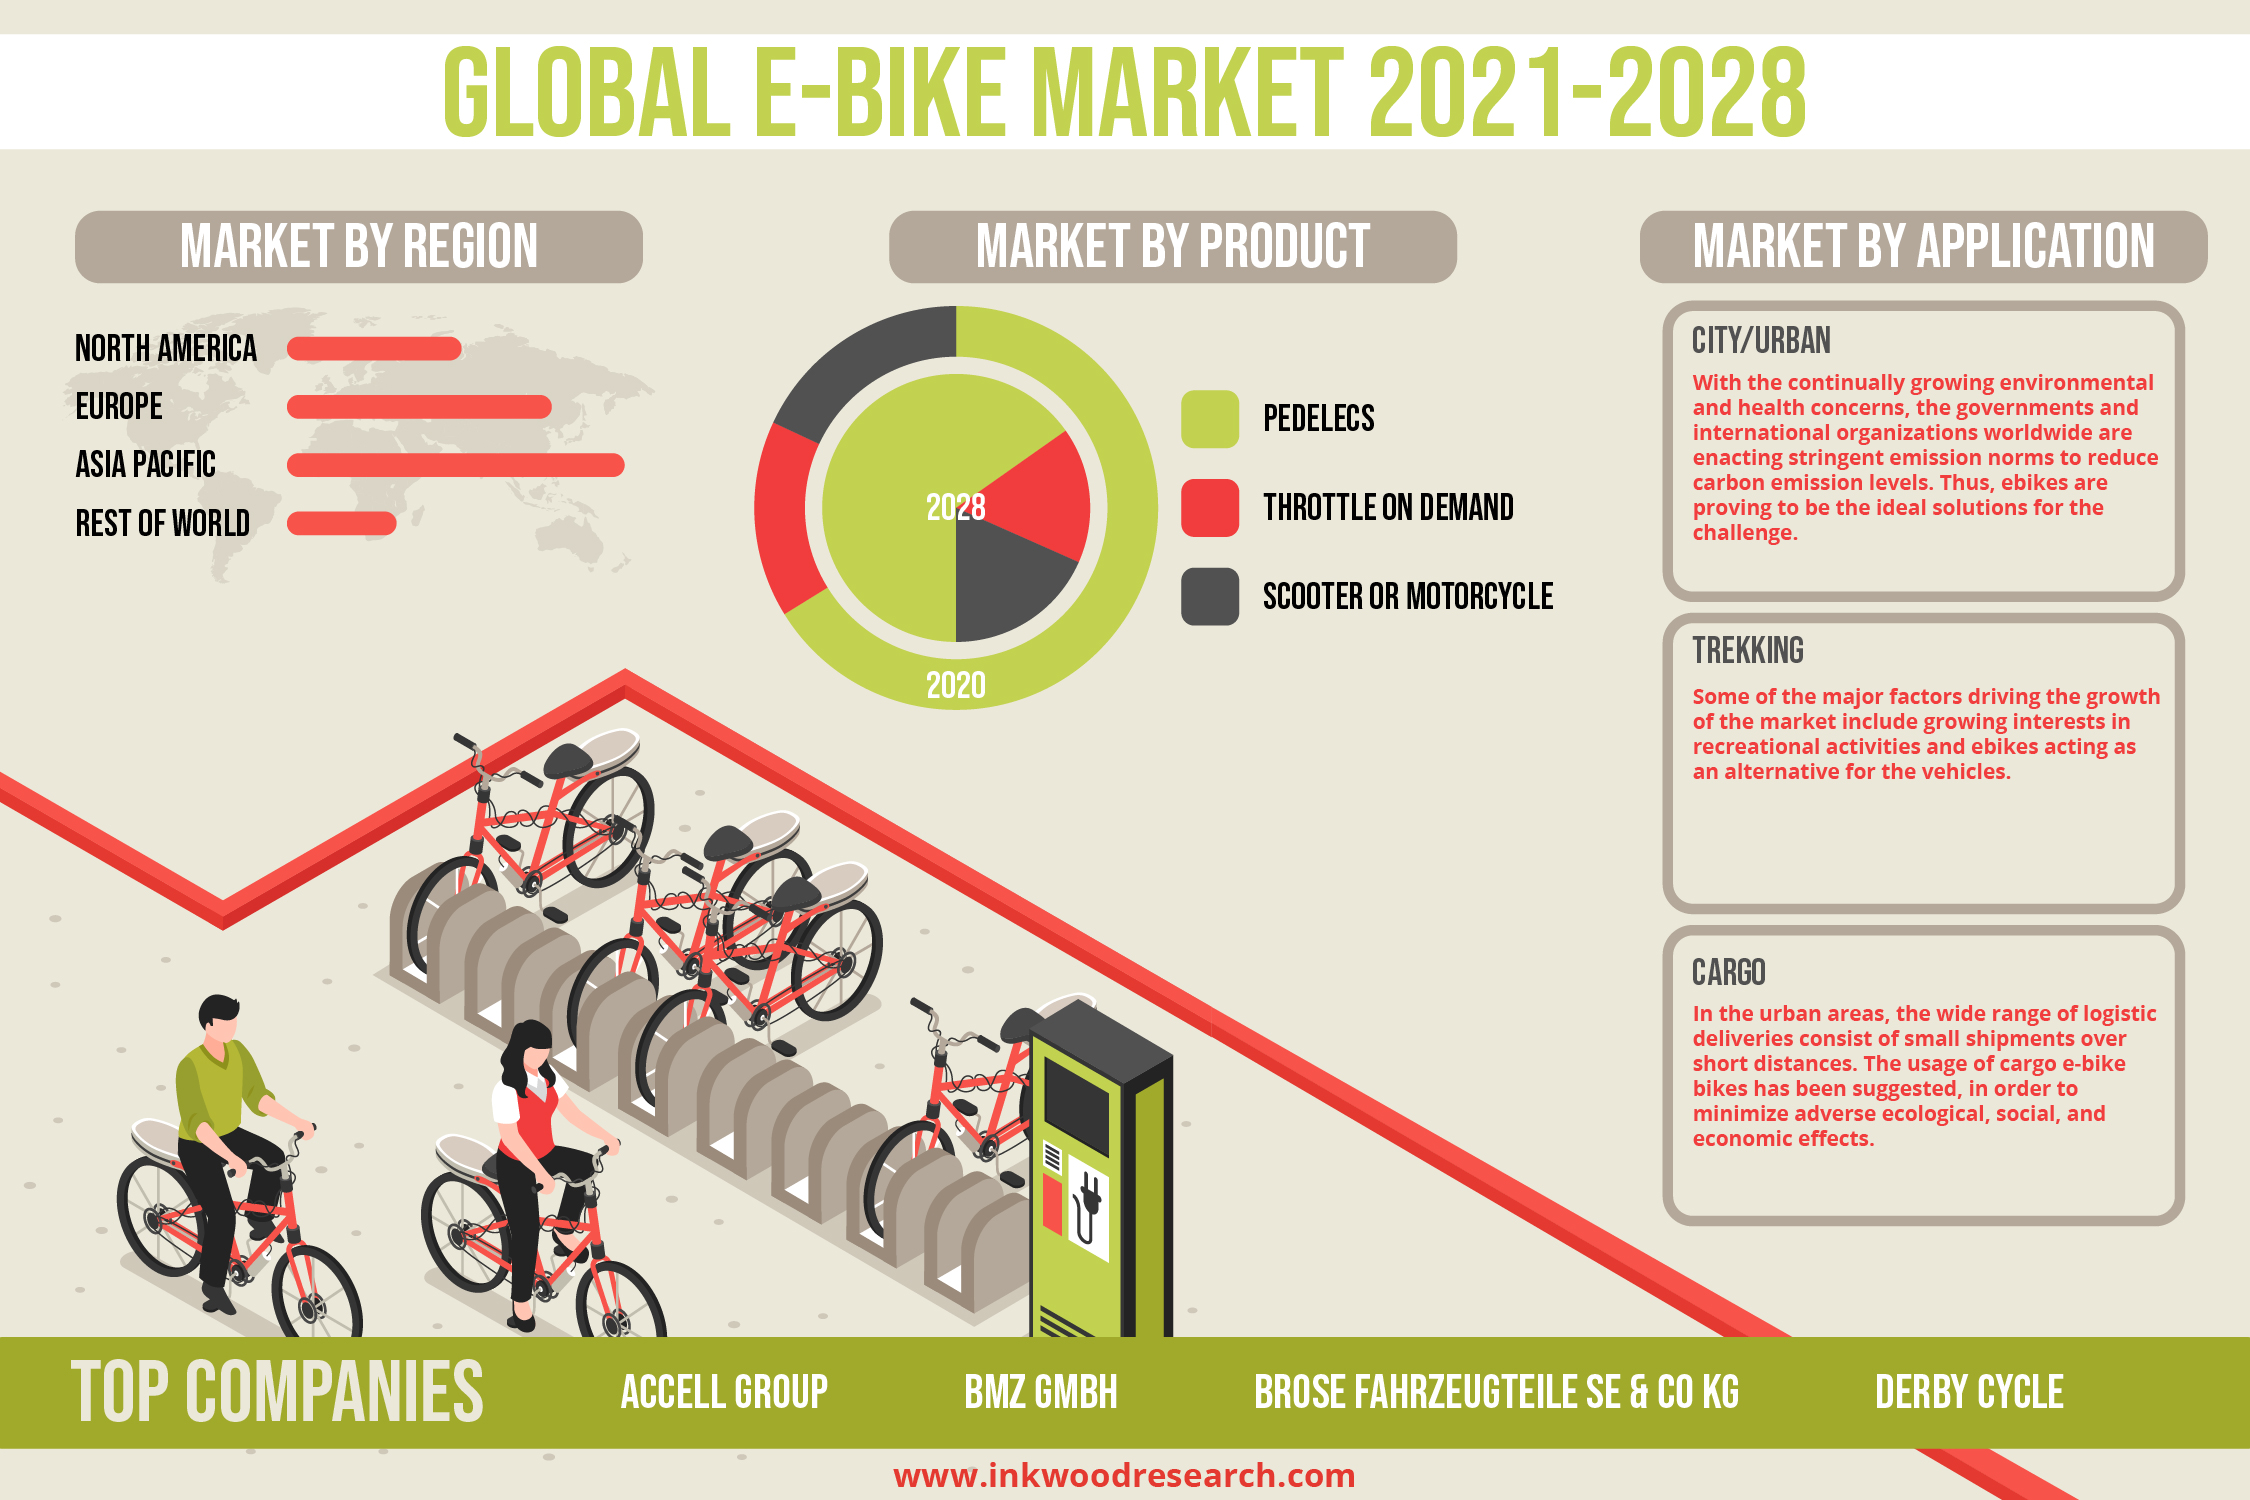 Government Incentives to encourage growth in the Global E-Bike Market